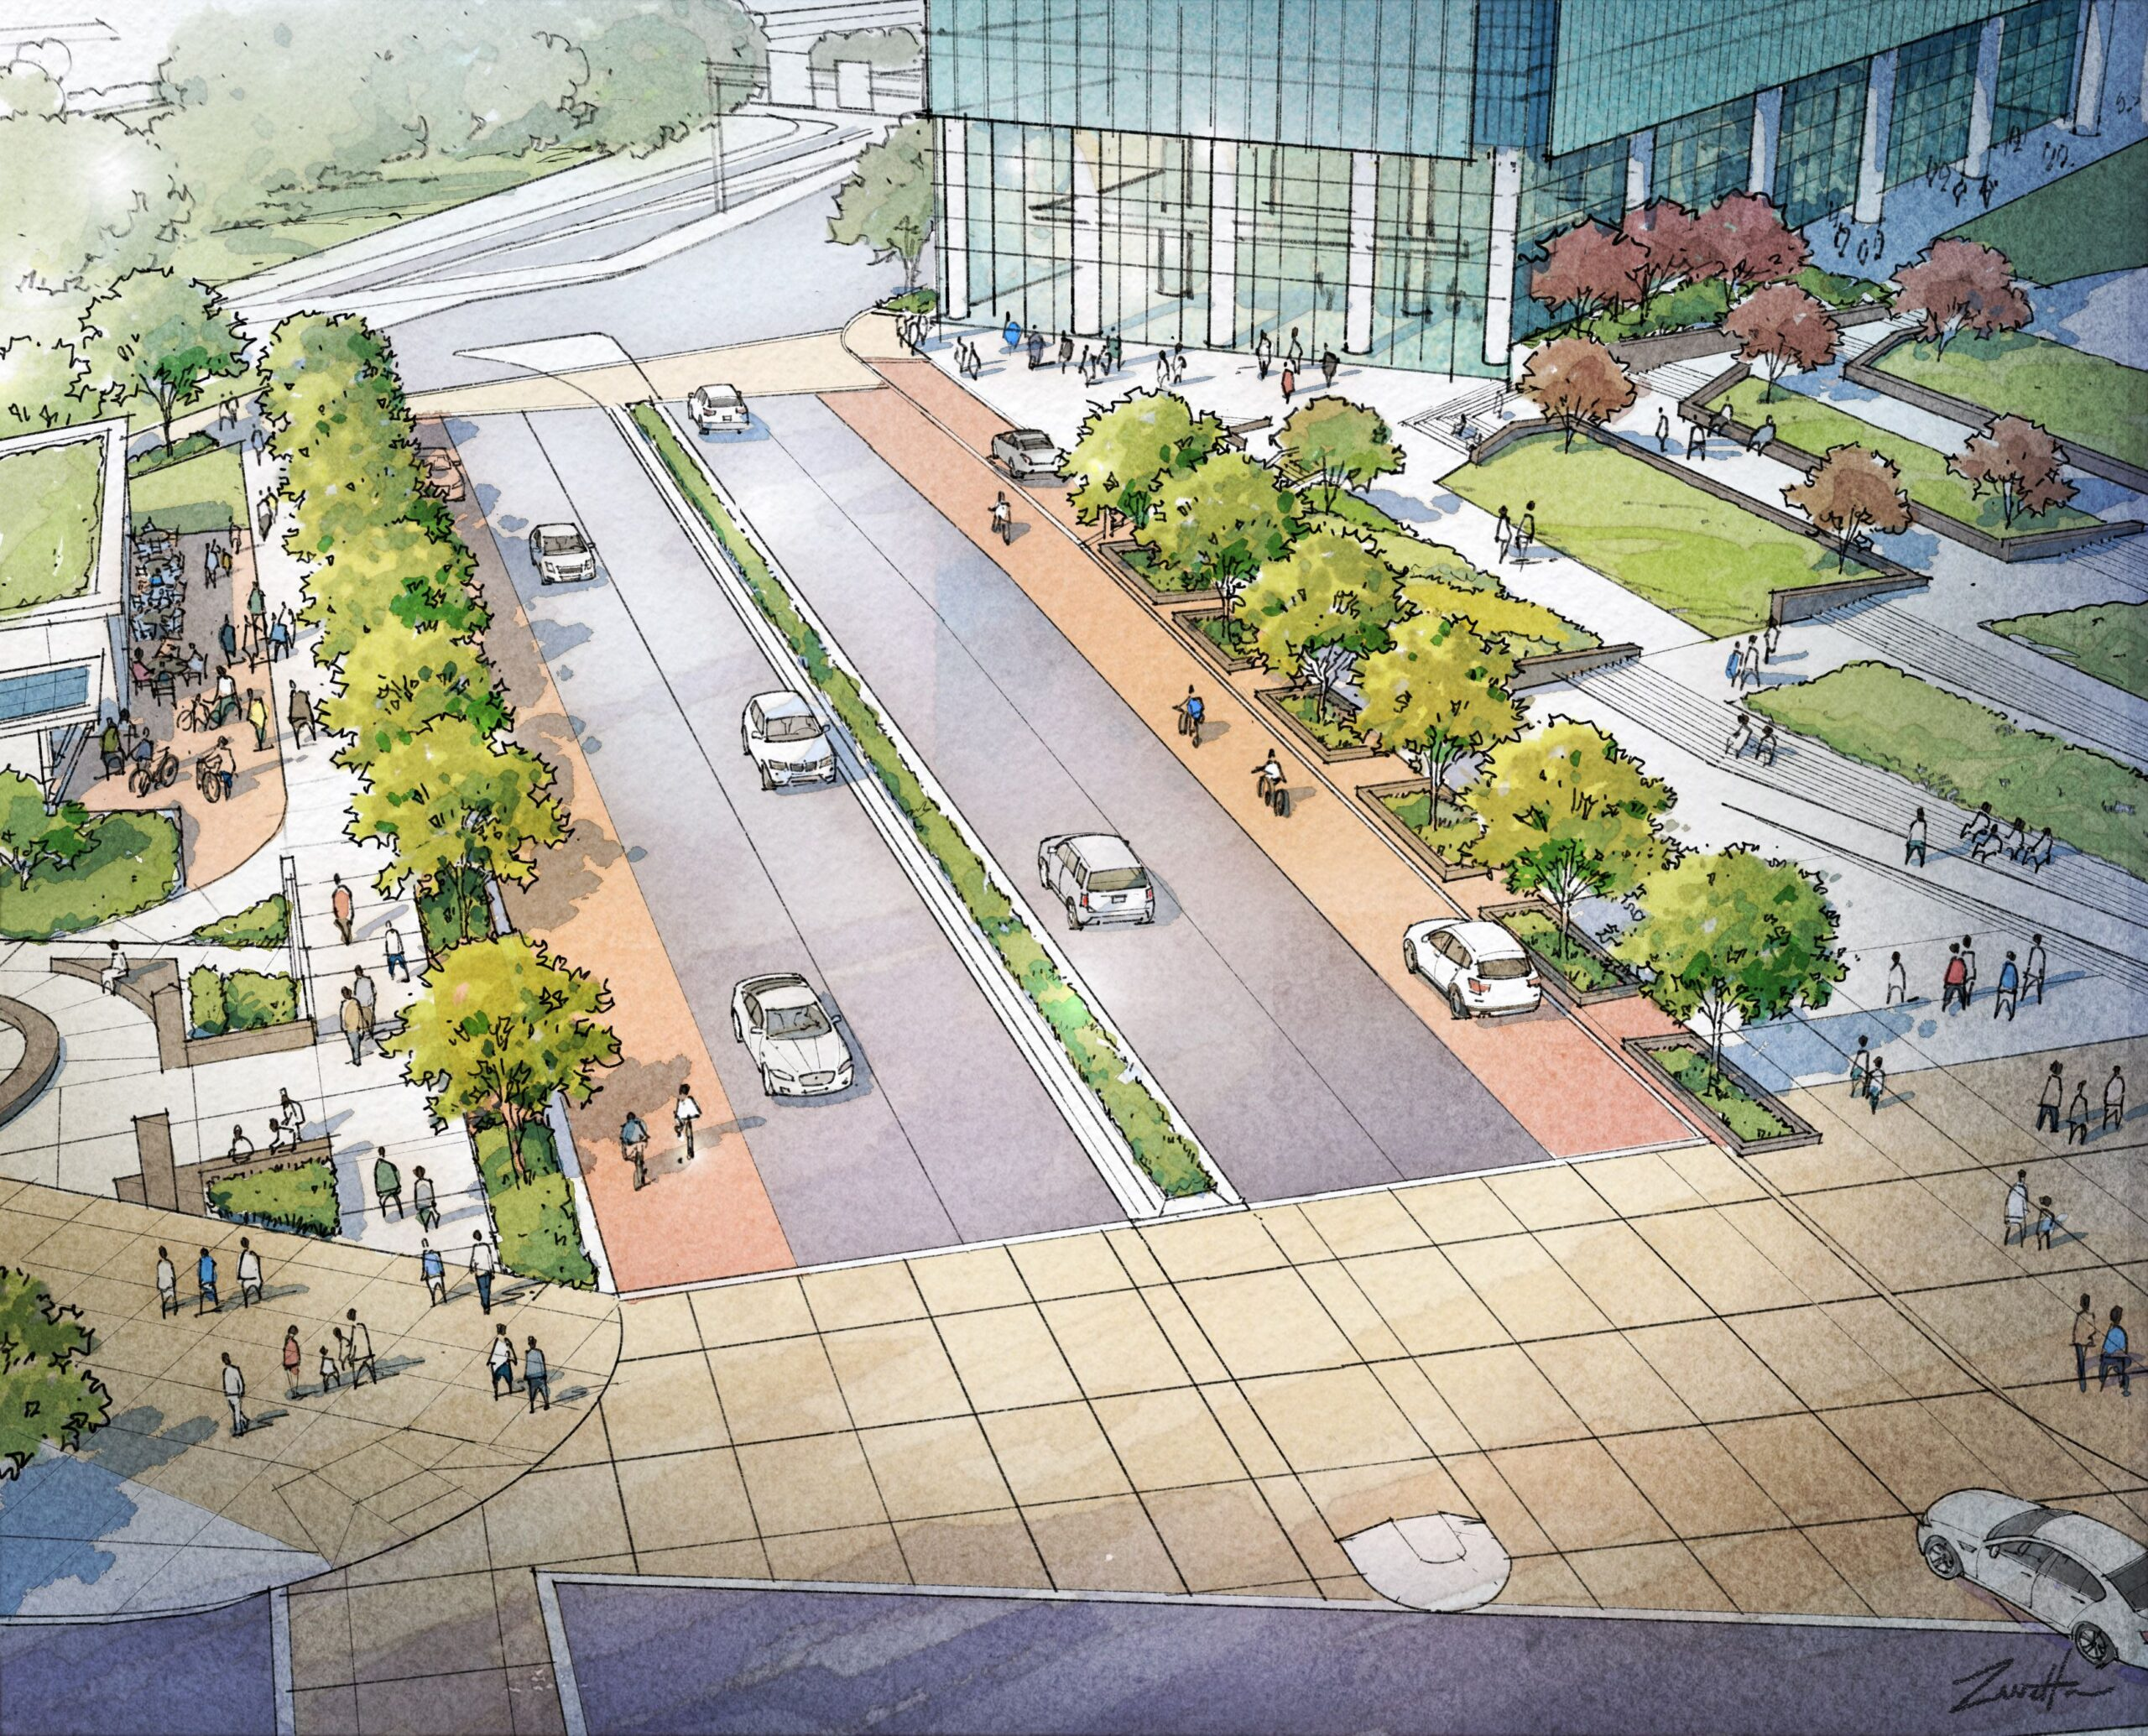 Rendering of the I-579 CAP Park, Lower Hill Open Space and FNB Financial Center. Image courtesy of LaQuatra Bonci Associates